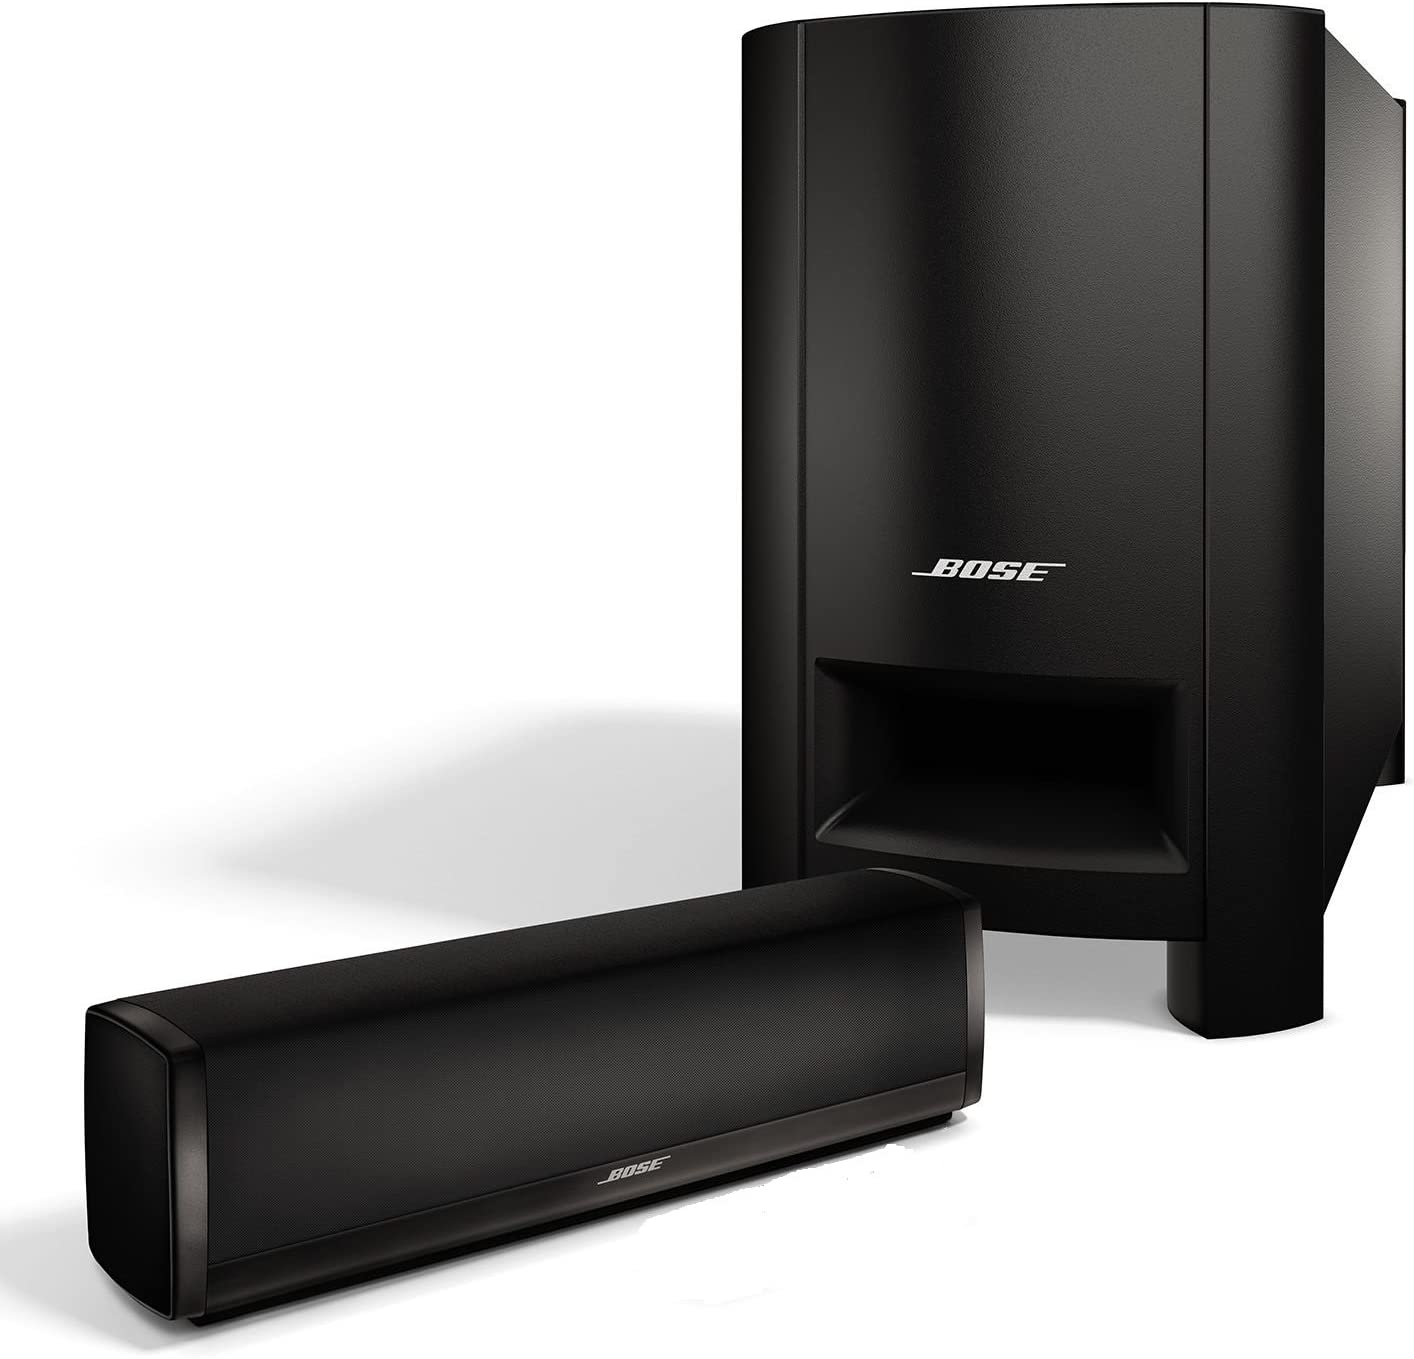 Amazon.com: Bose CineMate 9 Home Theater Speaker System: Electronics